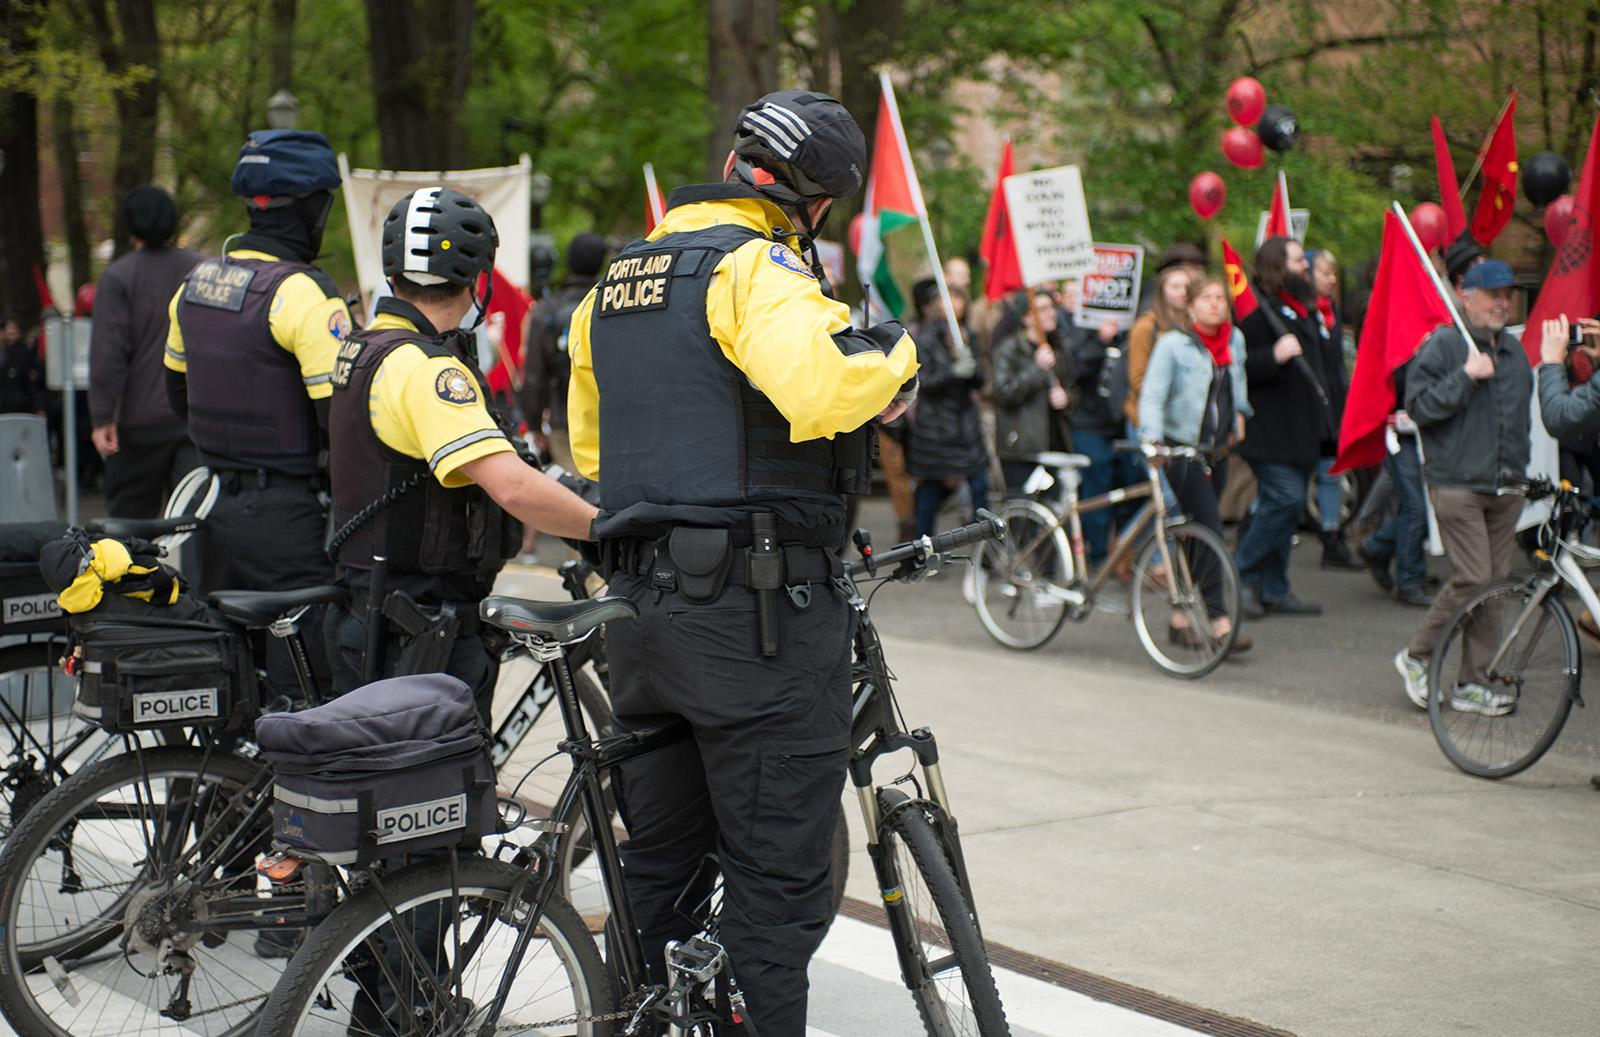 May Day 2017 in Portland (KATU News photo May 1, 2017 by Tristan Fortsch)